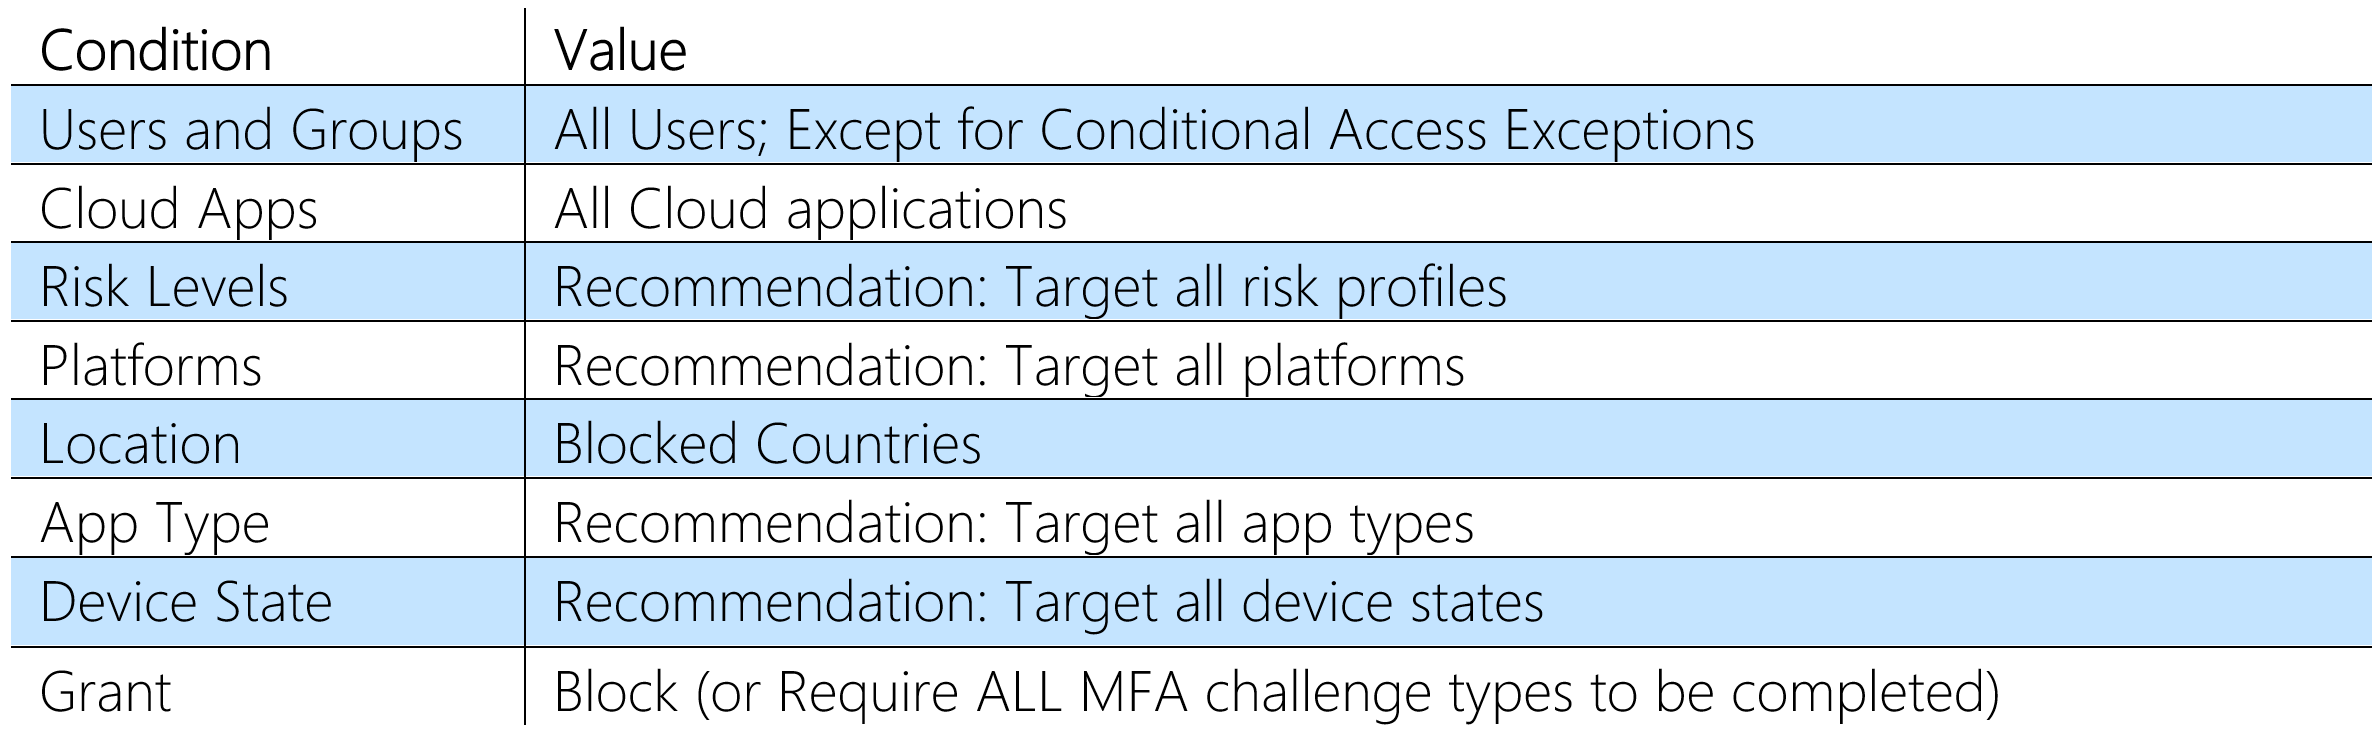 Conditional Access with Azure MFA for high risk countries